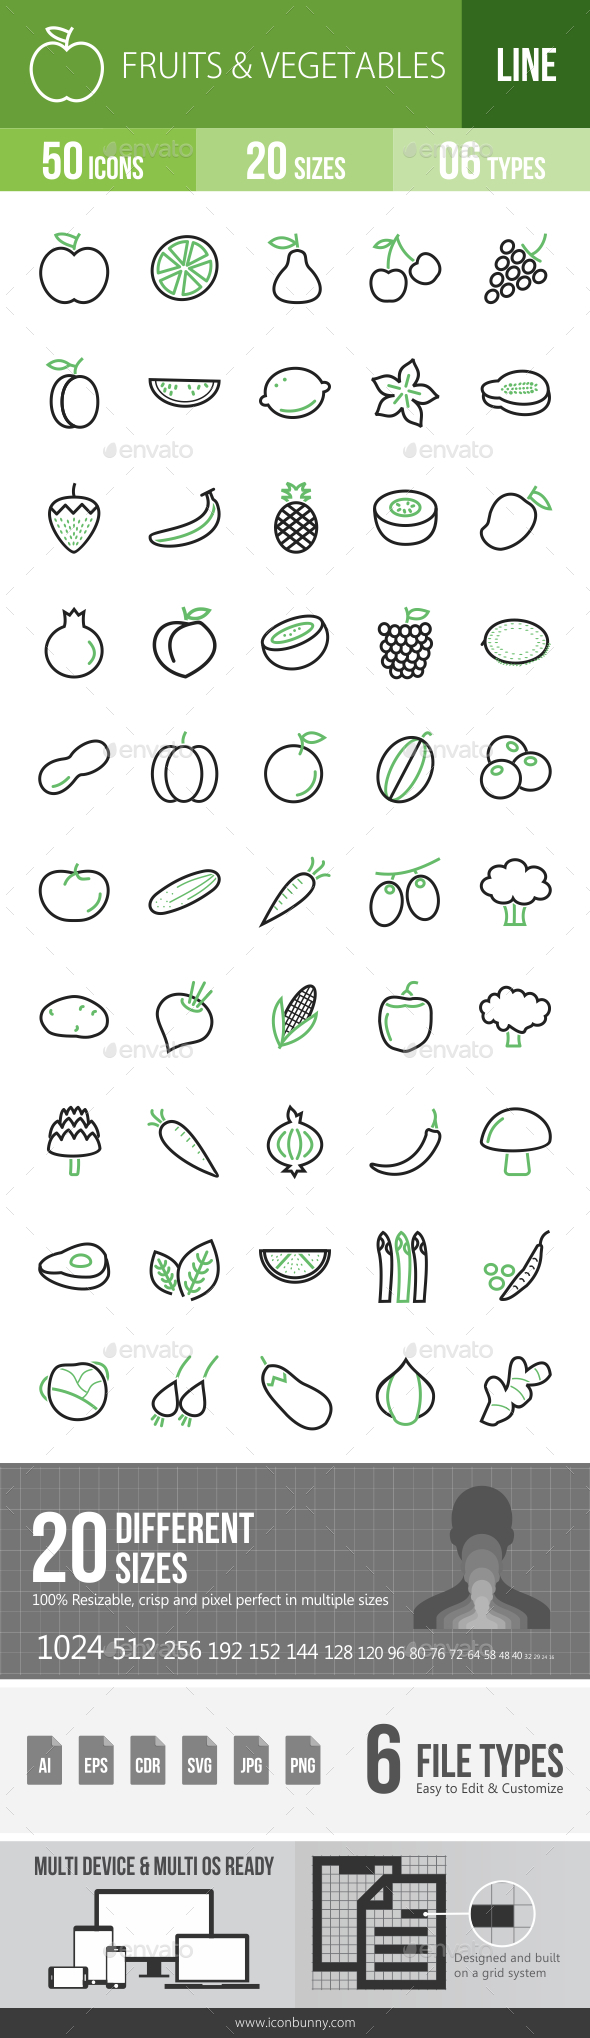 Fruits & Vegetables Line Green & Black Icons - Icons